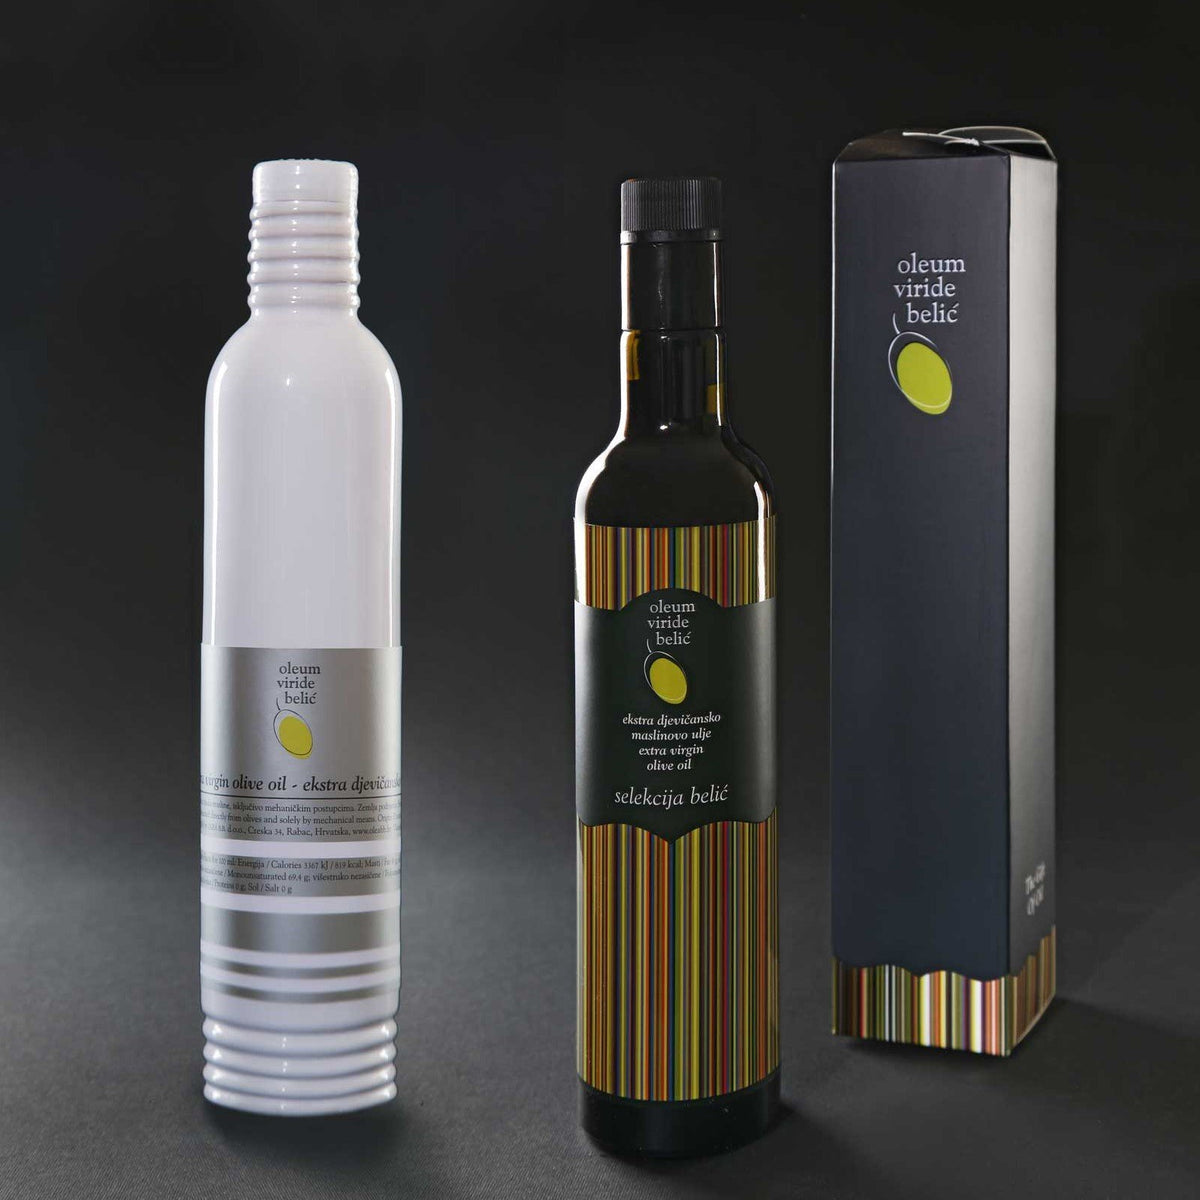 Istria is officially the best region for extra virgin olive oil in the world - for the sixth year in a row! | Marqt.no